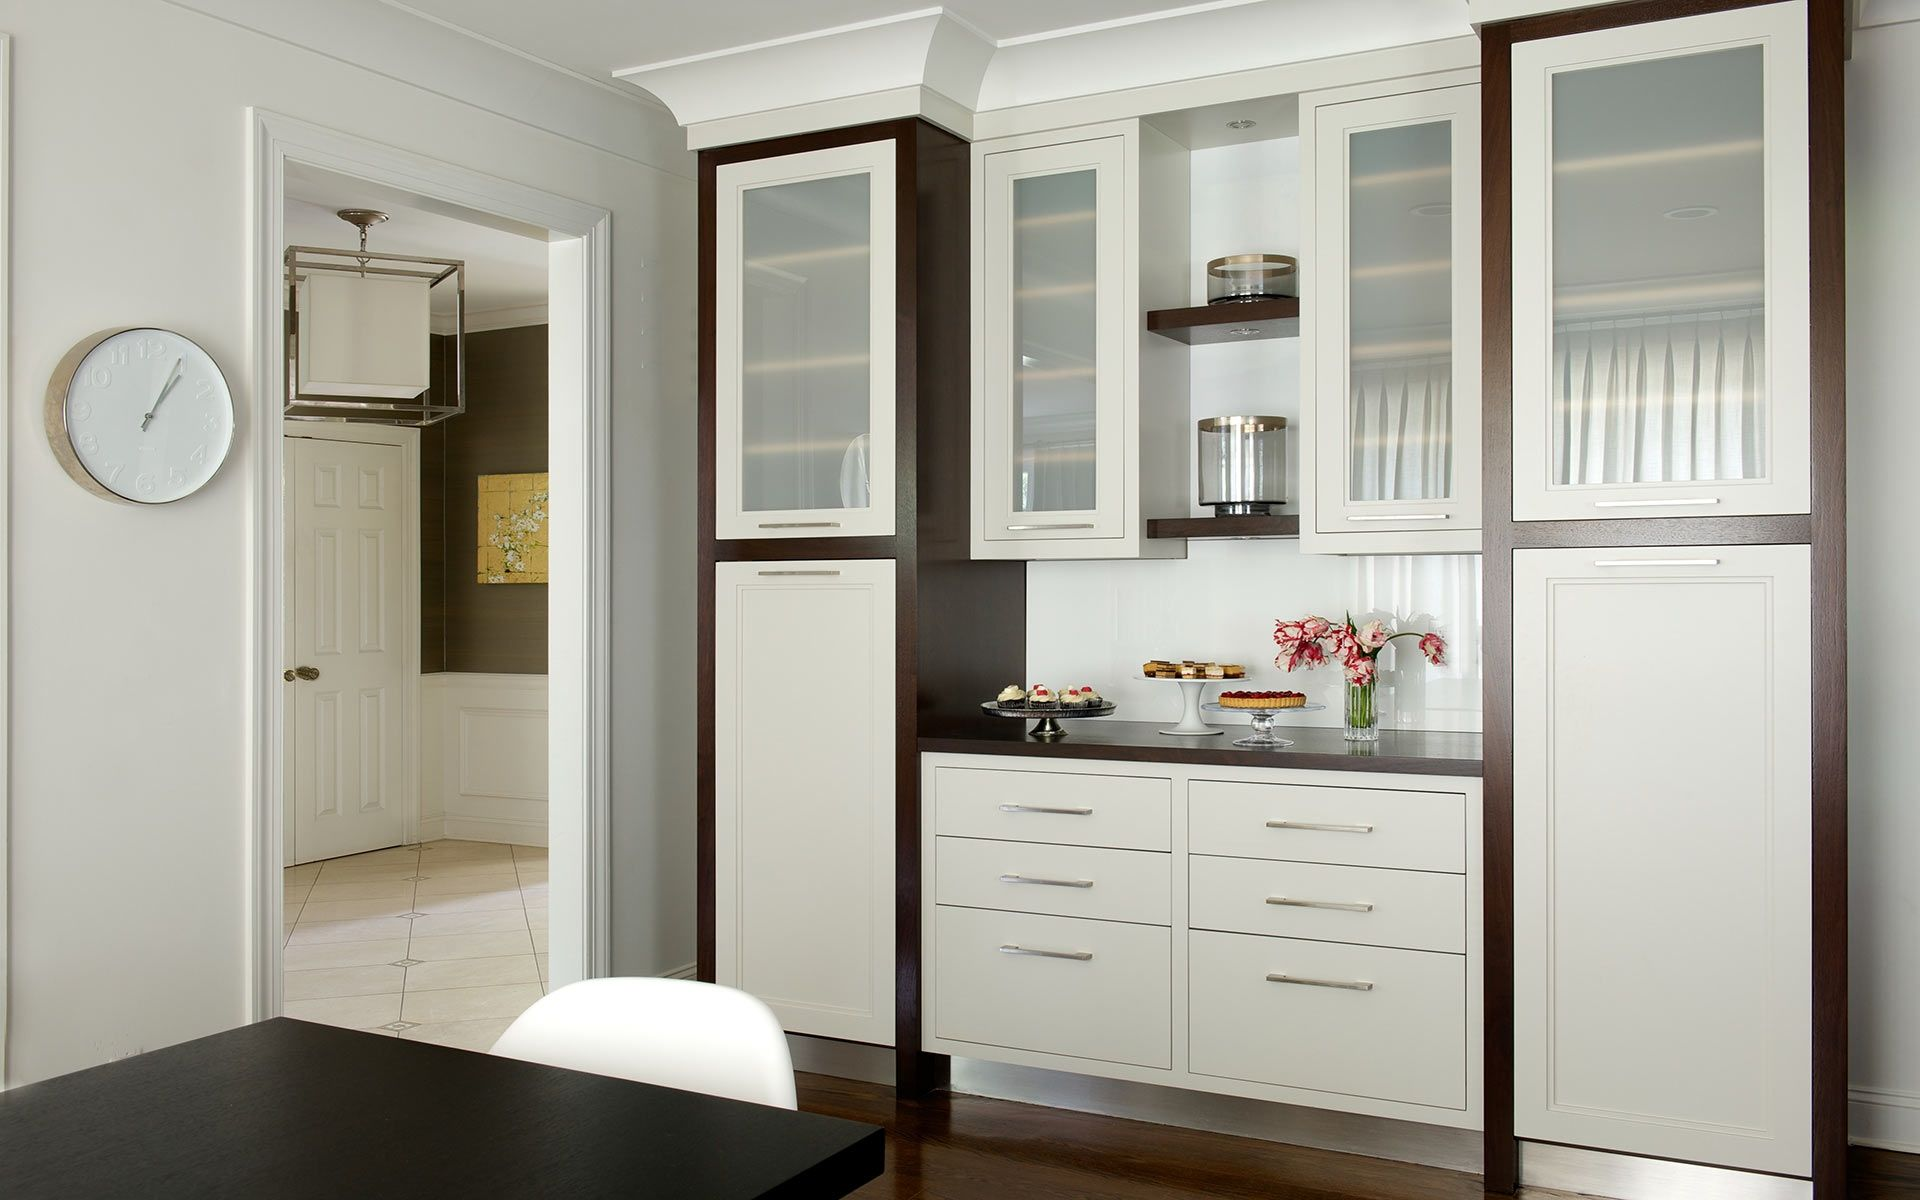 white door/drawer fronts, wood trim cabinets | White doors ...